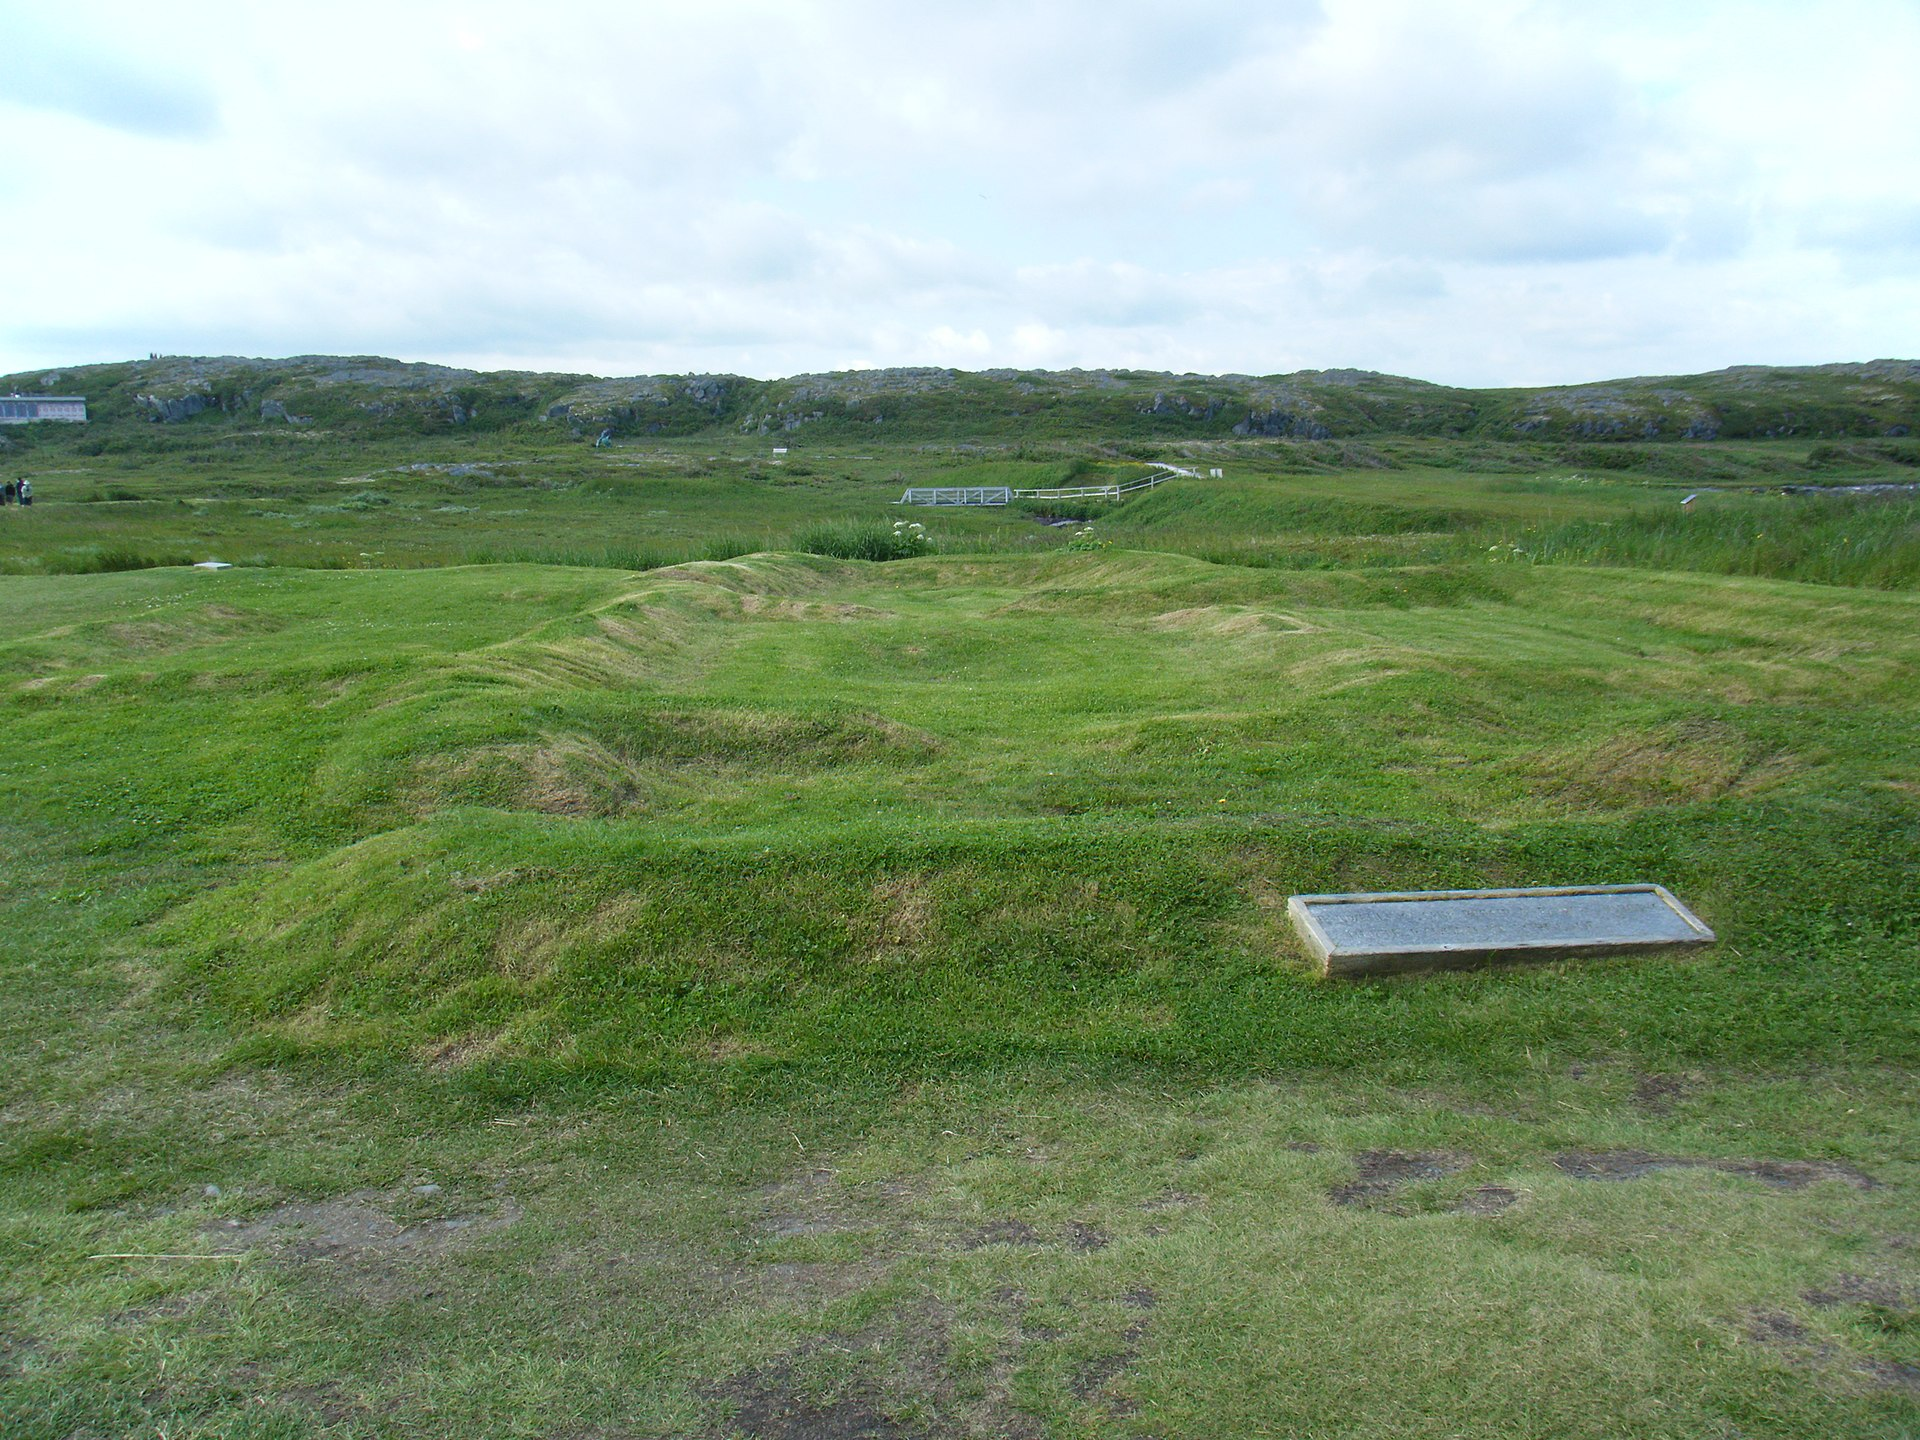 Photo of L'Anse aux Meadows on a sunny day in 2010. Photo: Remains of Norse settlement building, 2010 (building A) by Clinton Pierce is licensed under CC BY-SA 3.0